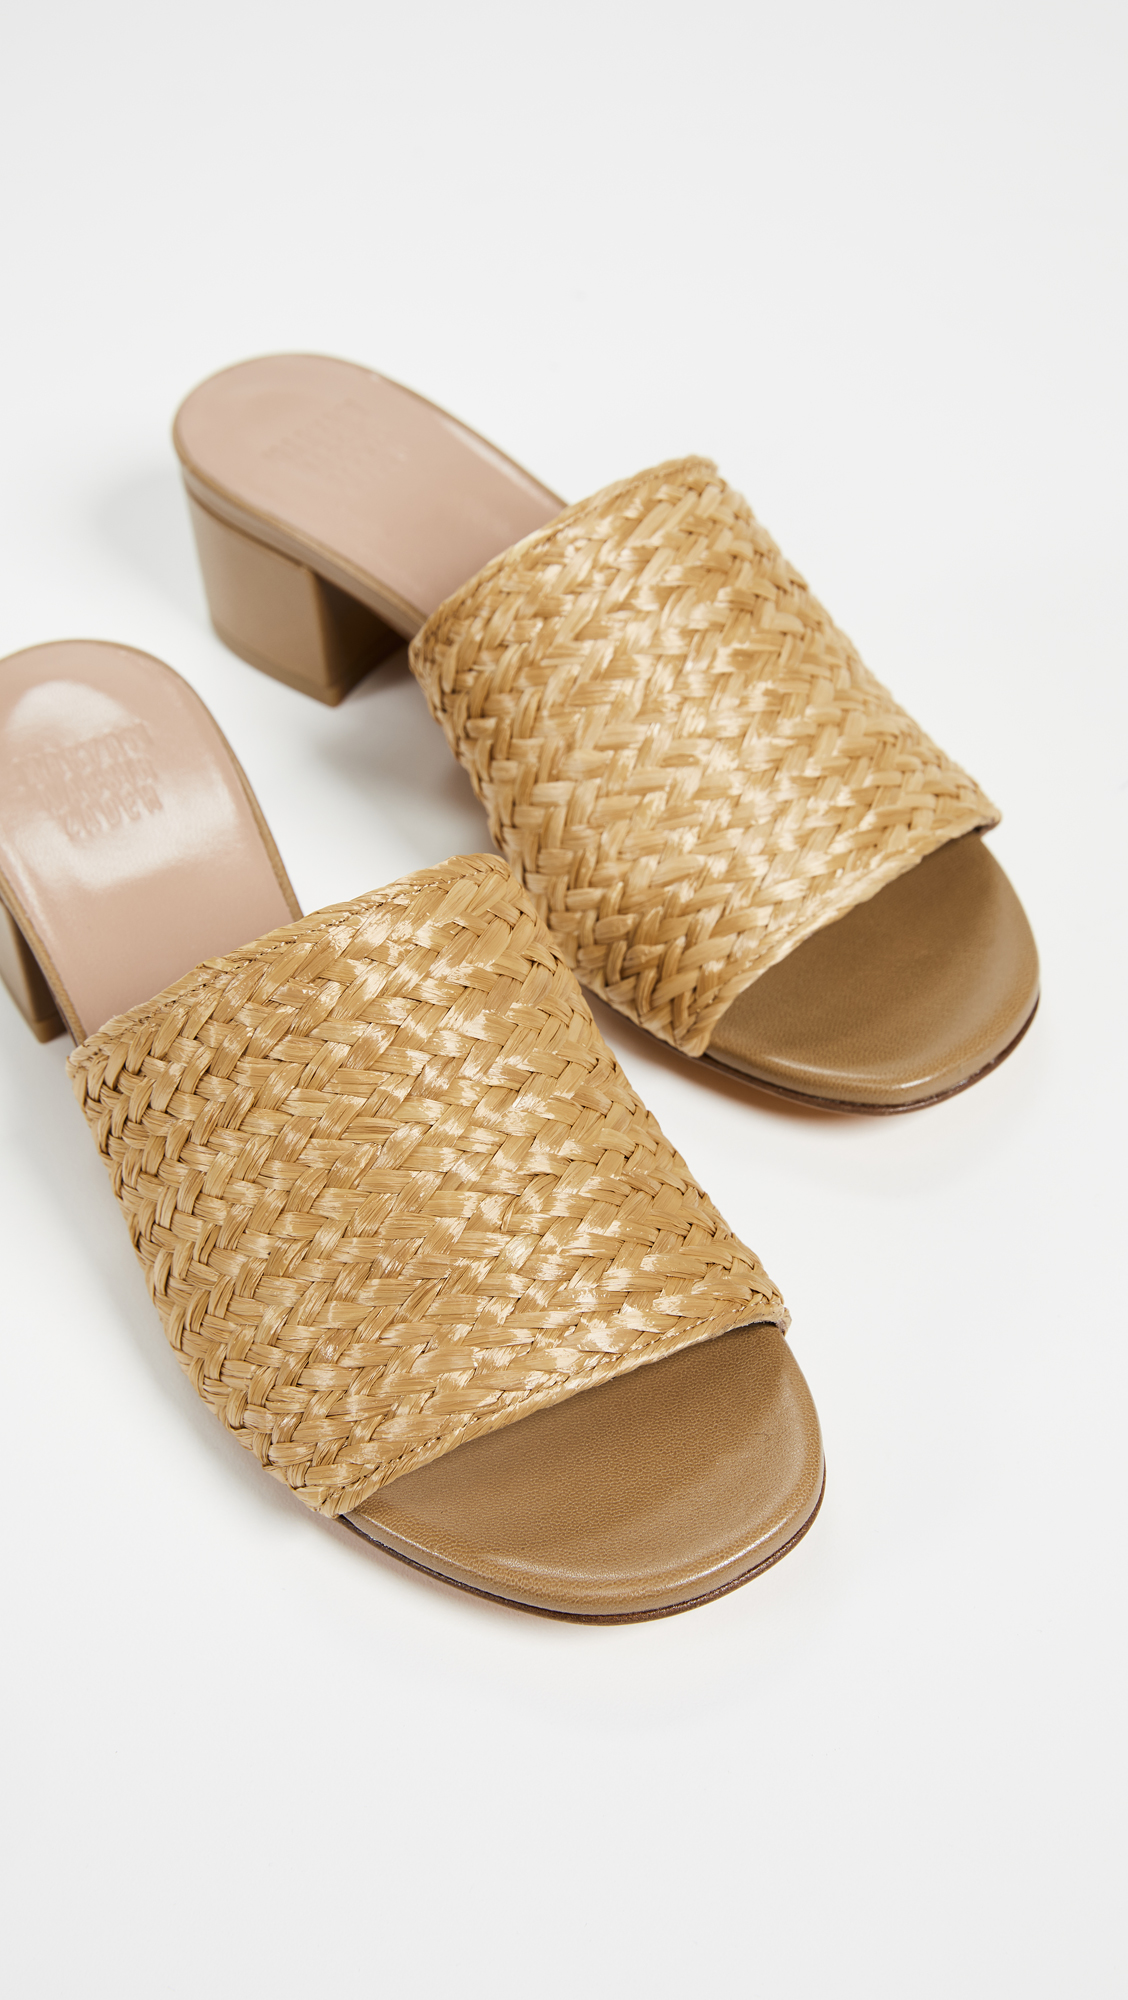 Chic Straw Slide